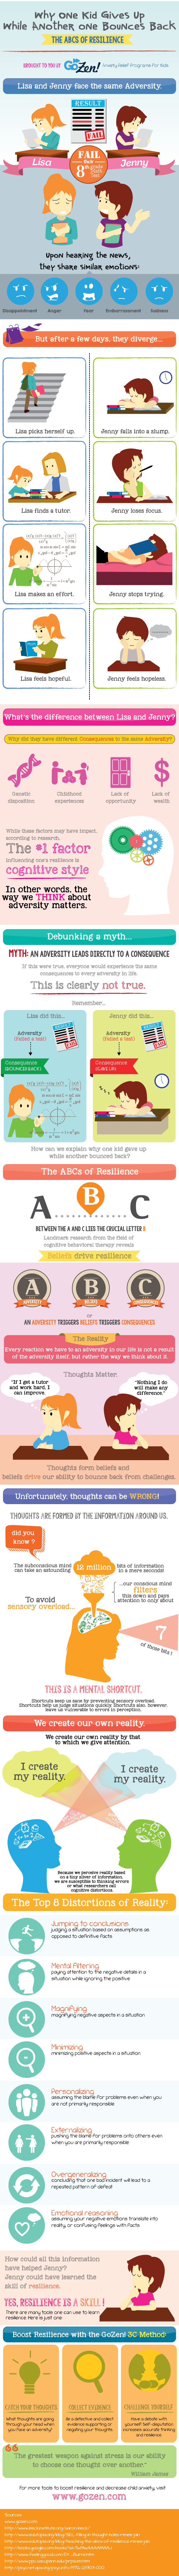 ABCs of Resilience